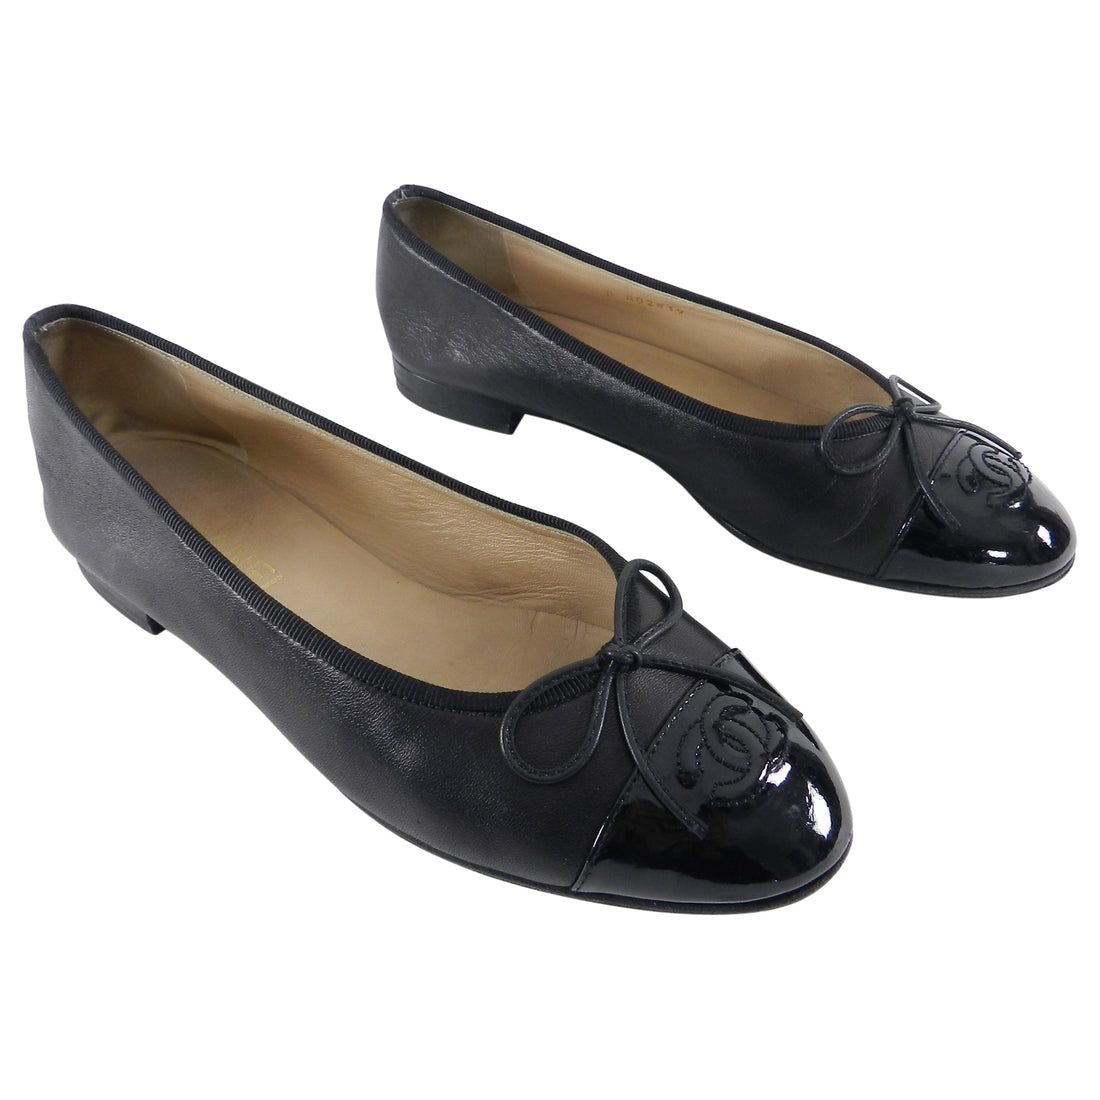 Chanel Black Ballet Flats with Patent Cap Toe - 39.5